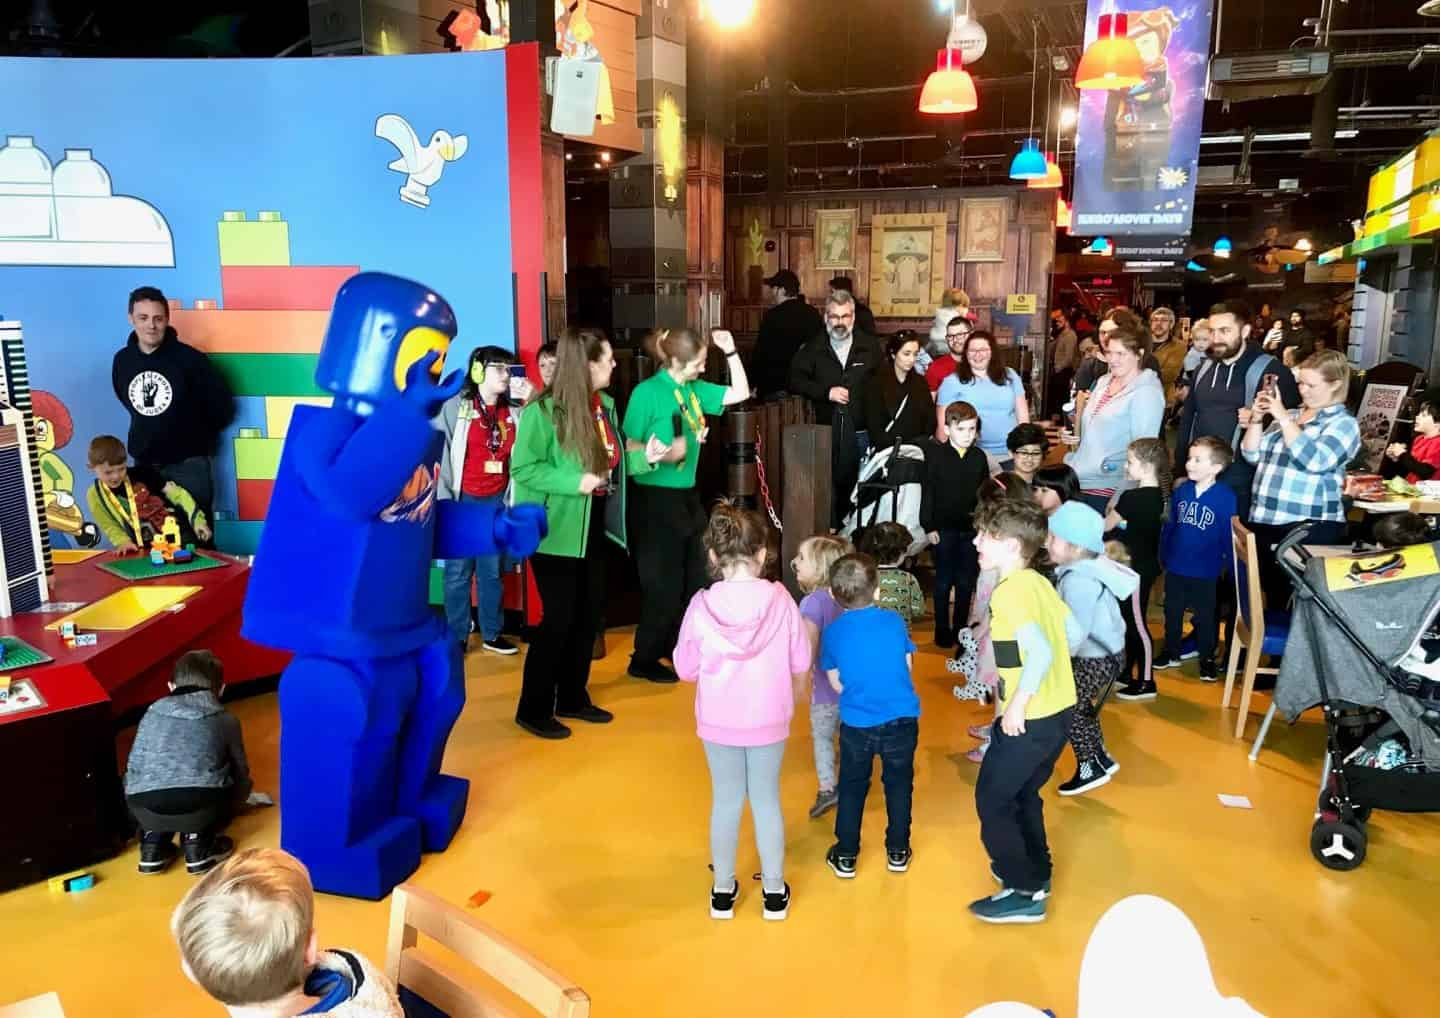 dancing-at-Legoland-discovery-centre-Manchester